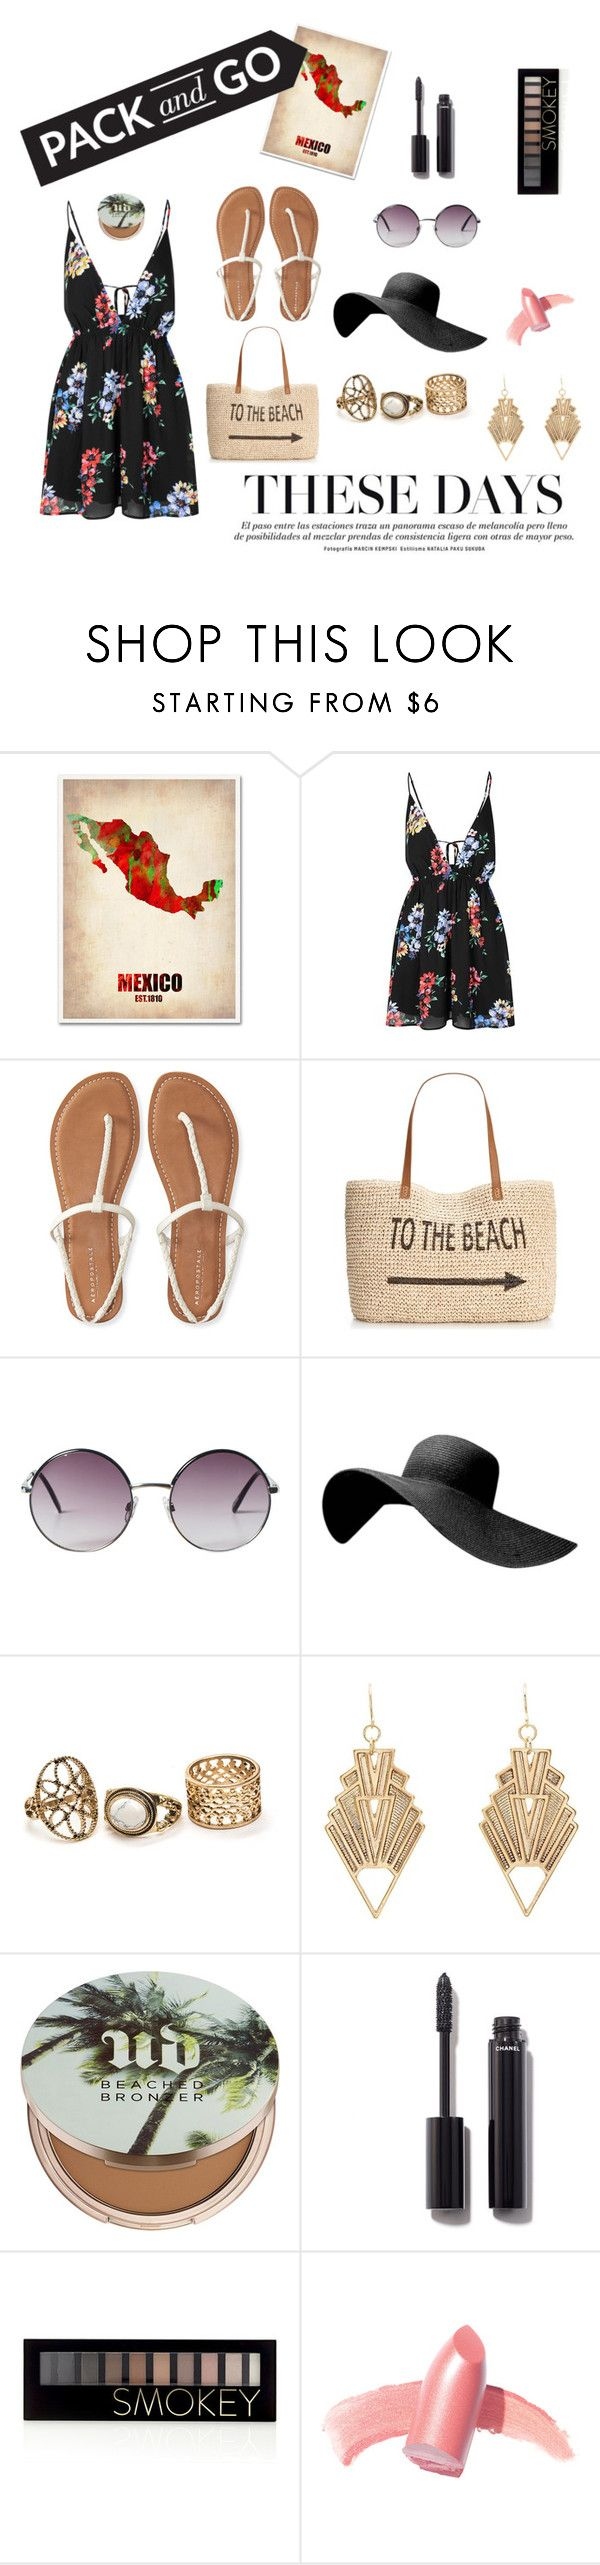 """""""Traveling to Mexico City"""" by janisan0310 ❤ liked on Polyvore featuring Trademark Fine Art, Glamorous, Aéropostale, Style & Co., Monki, Charlotte Russe, Urban Decay, Chanel, Forever 21 and Elizabeth Arden"""